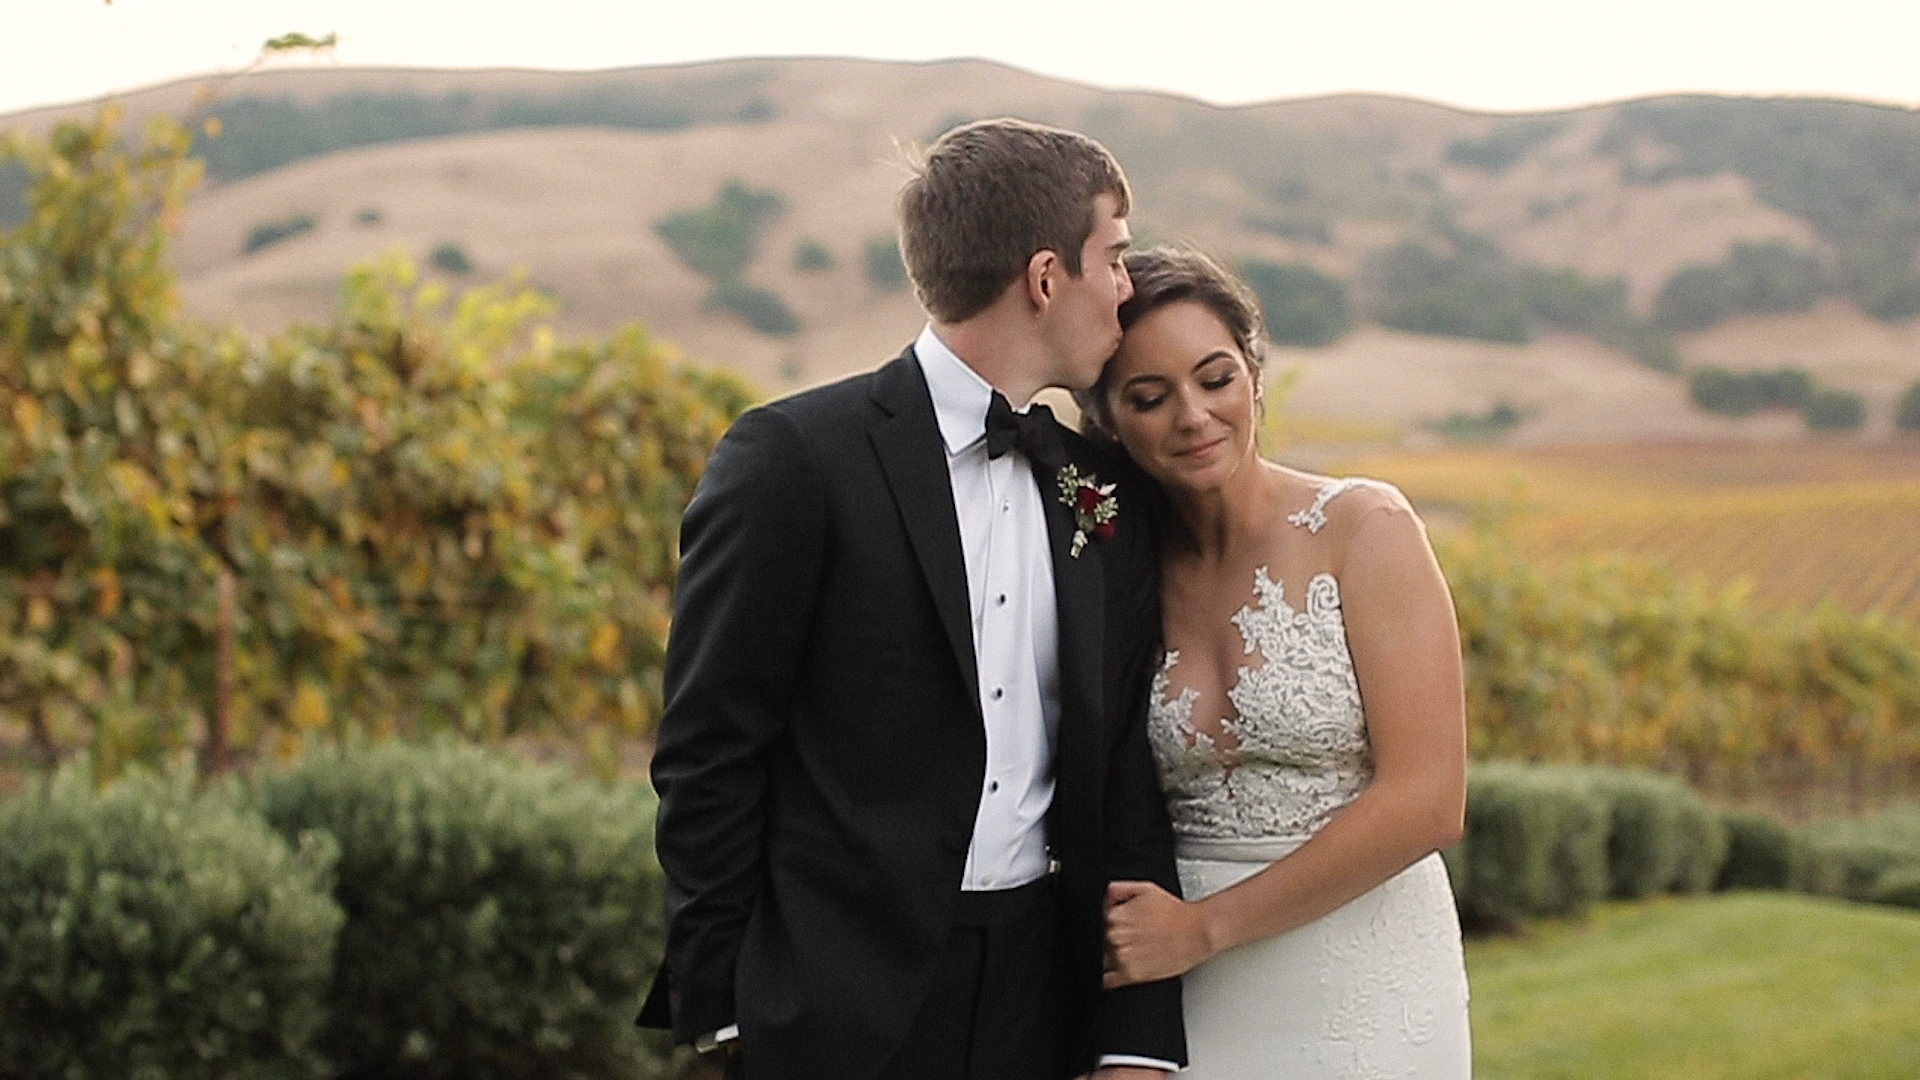 Danielle + David | Sonoma, California | viansa Winery